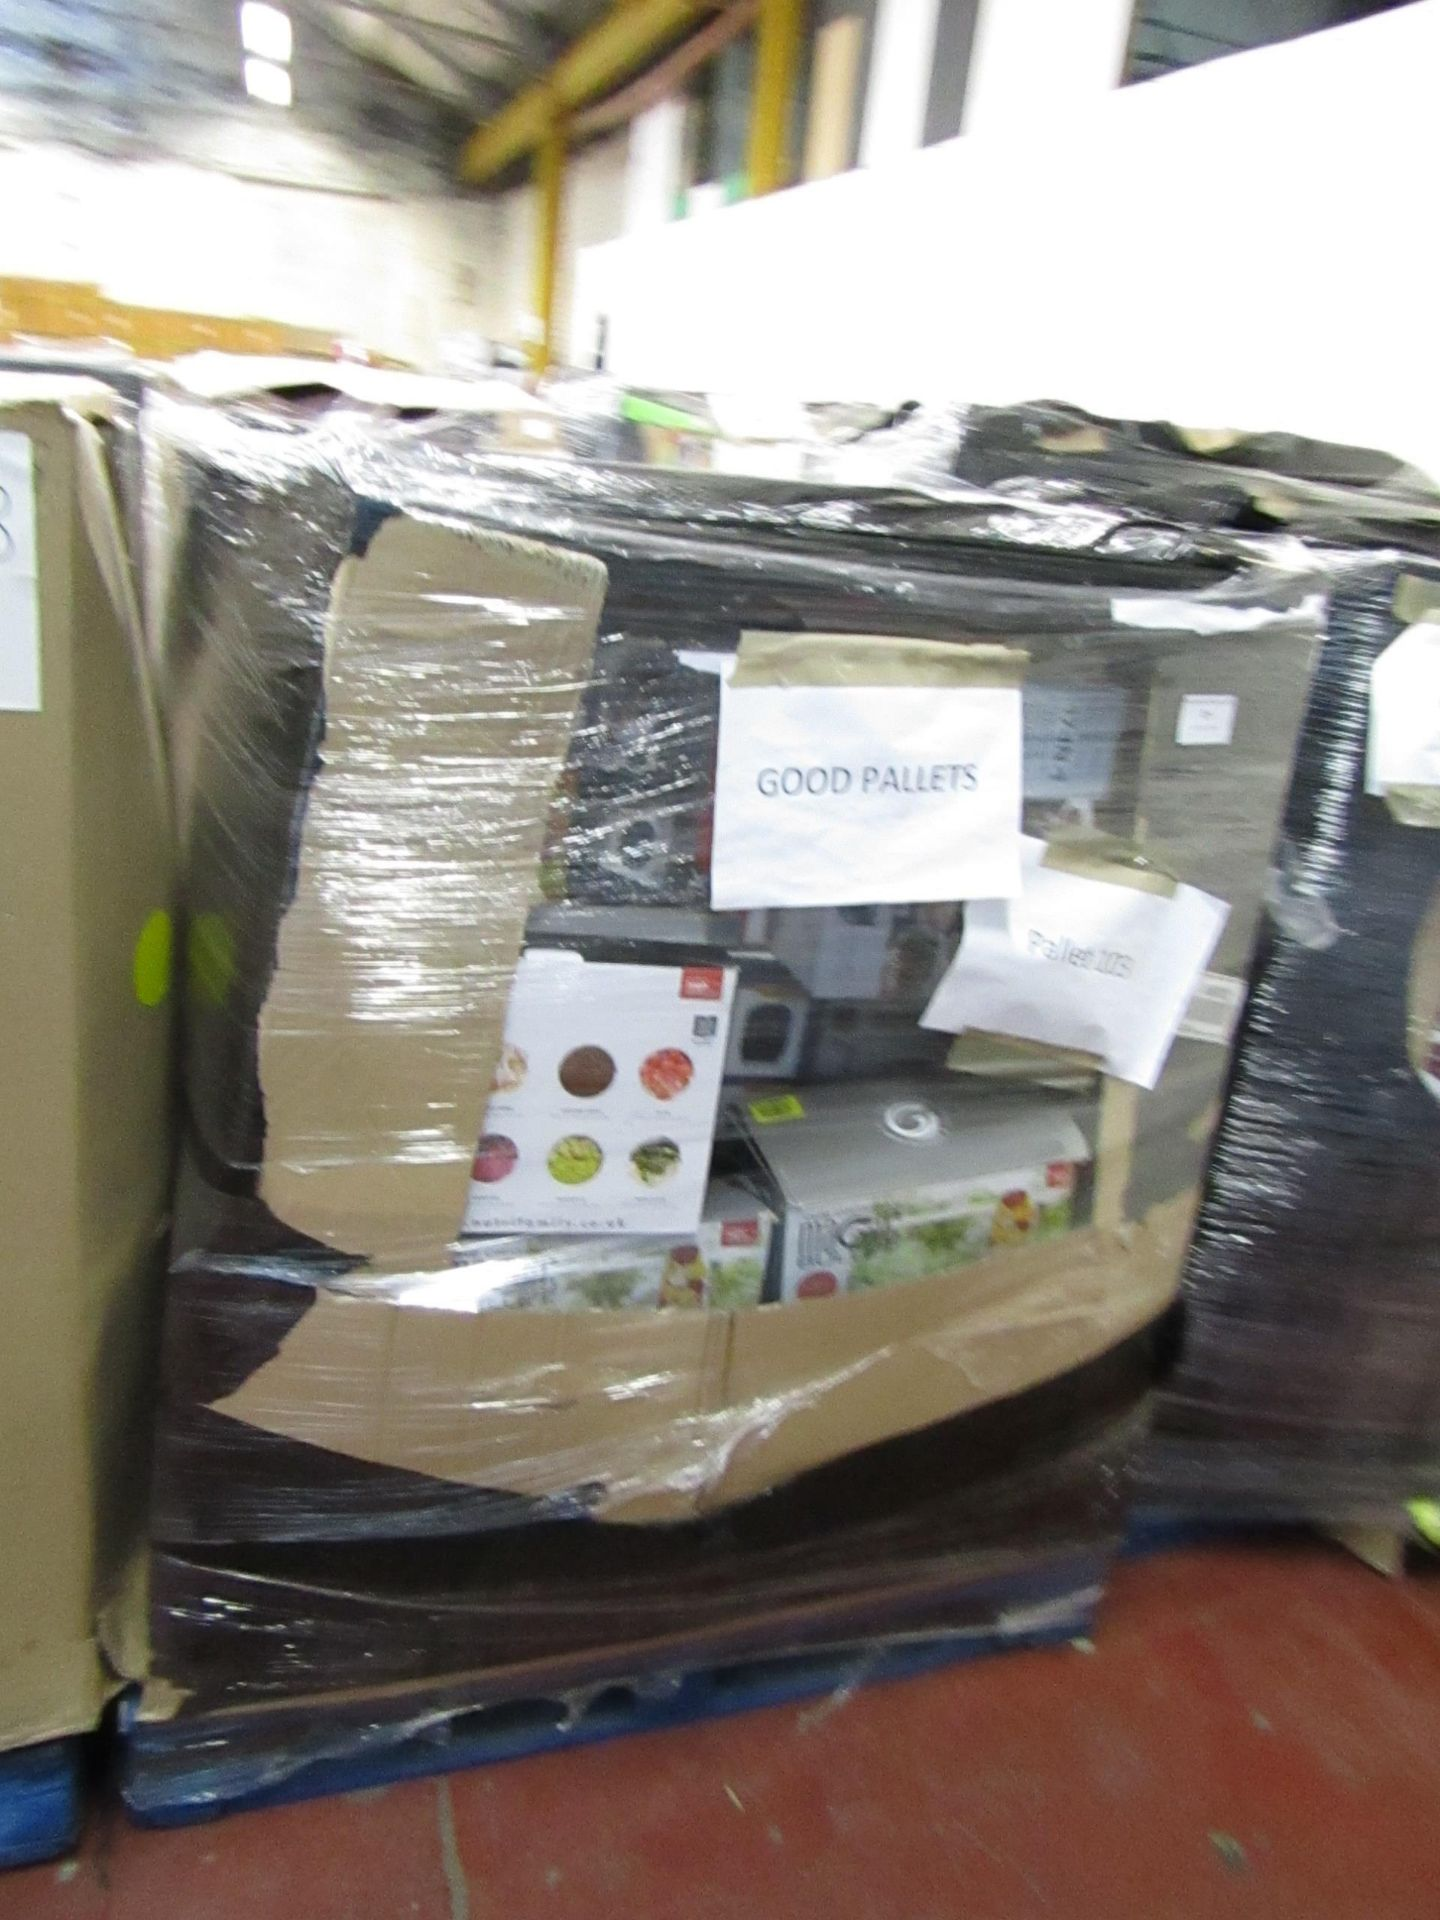 Lot 21 - | APPROX 35X | THE PALLET CONTAINS NUTRI BULLET, AIR FRYER XL'S, AIR HAWK AND MORE | BOXED AND